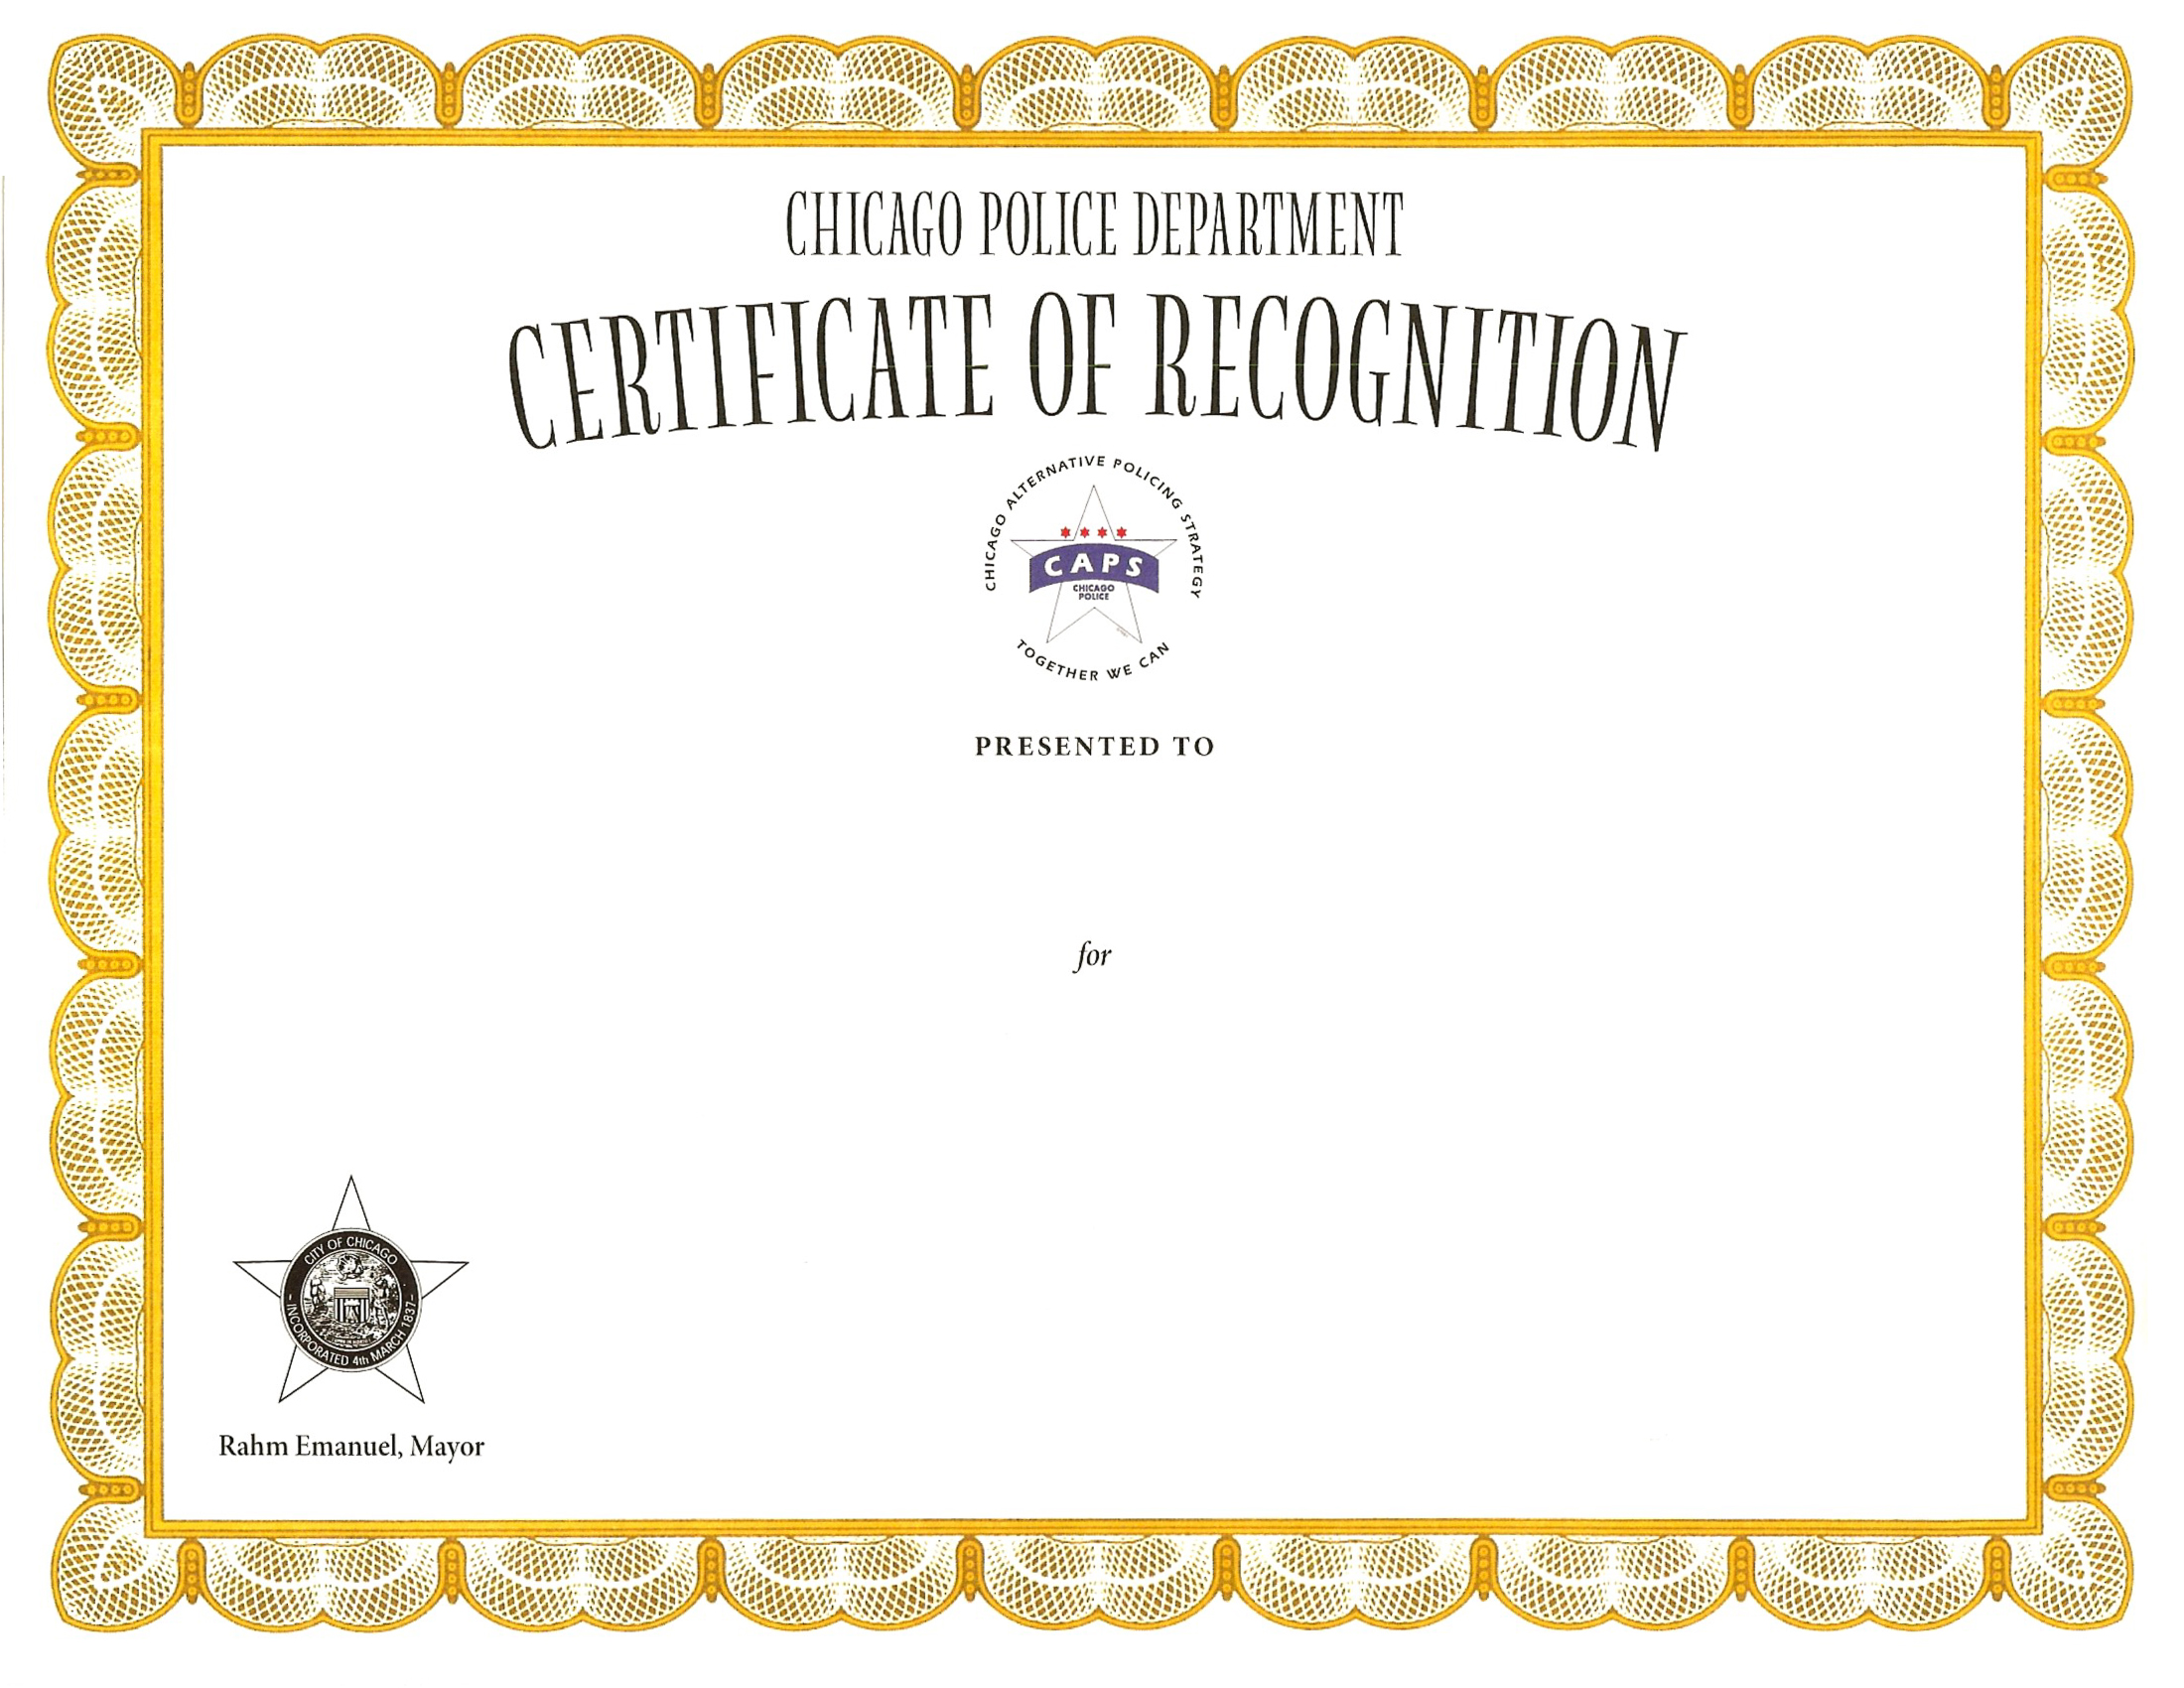 Certificate of Recognition Certificate - 2011 Series